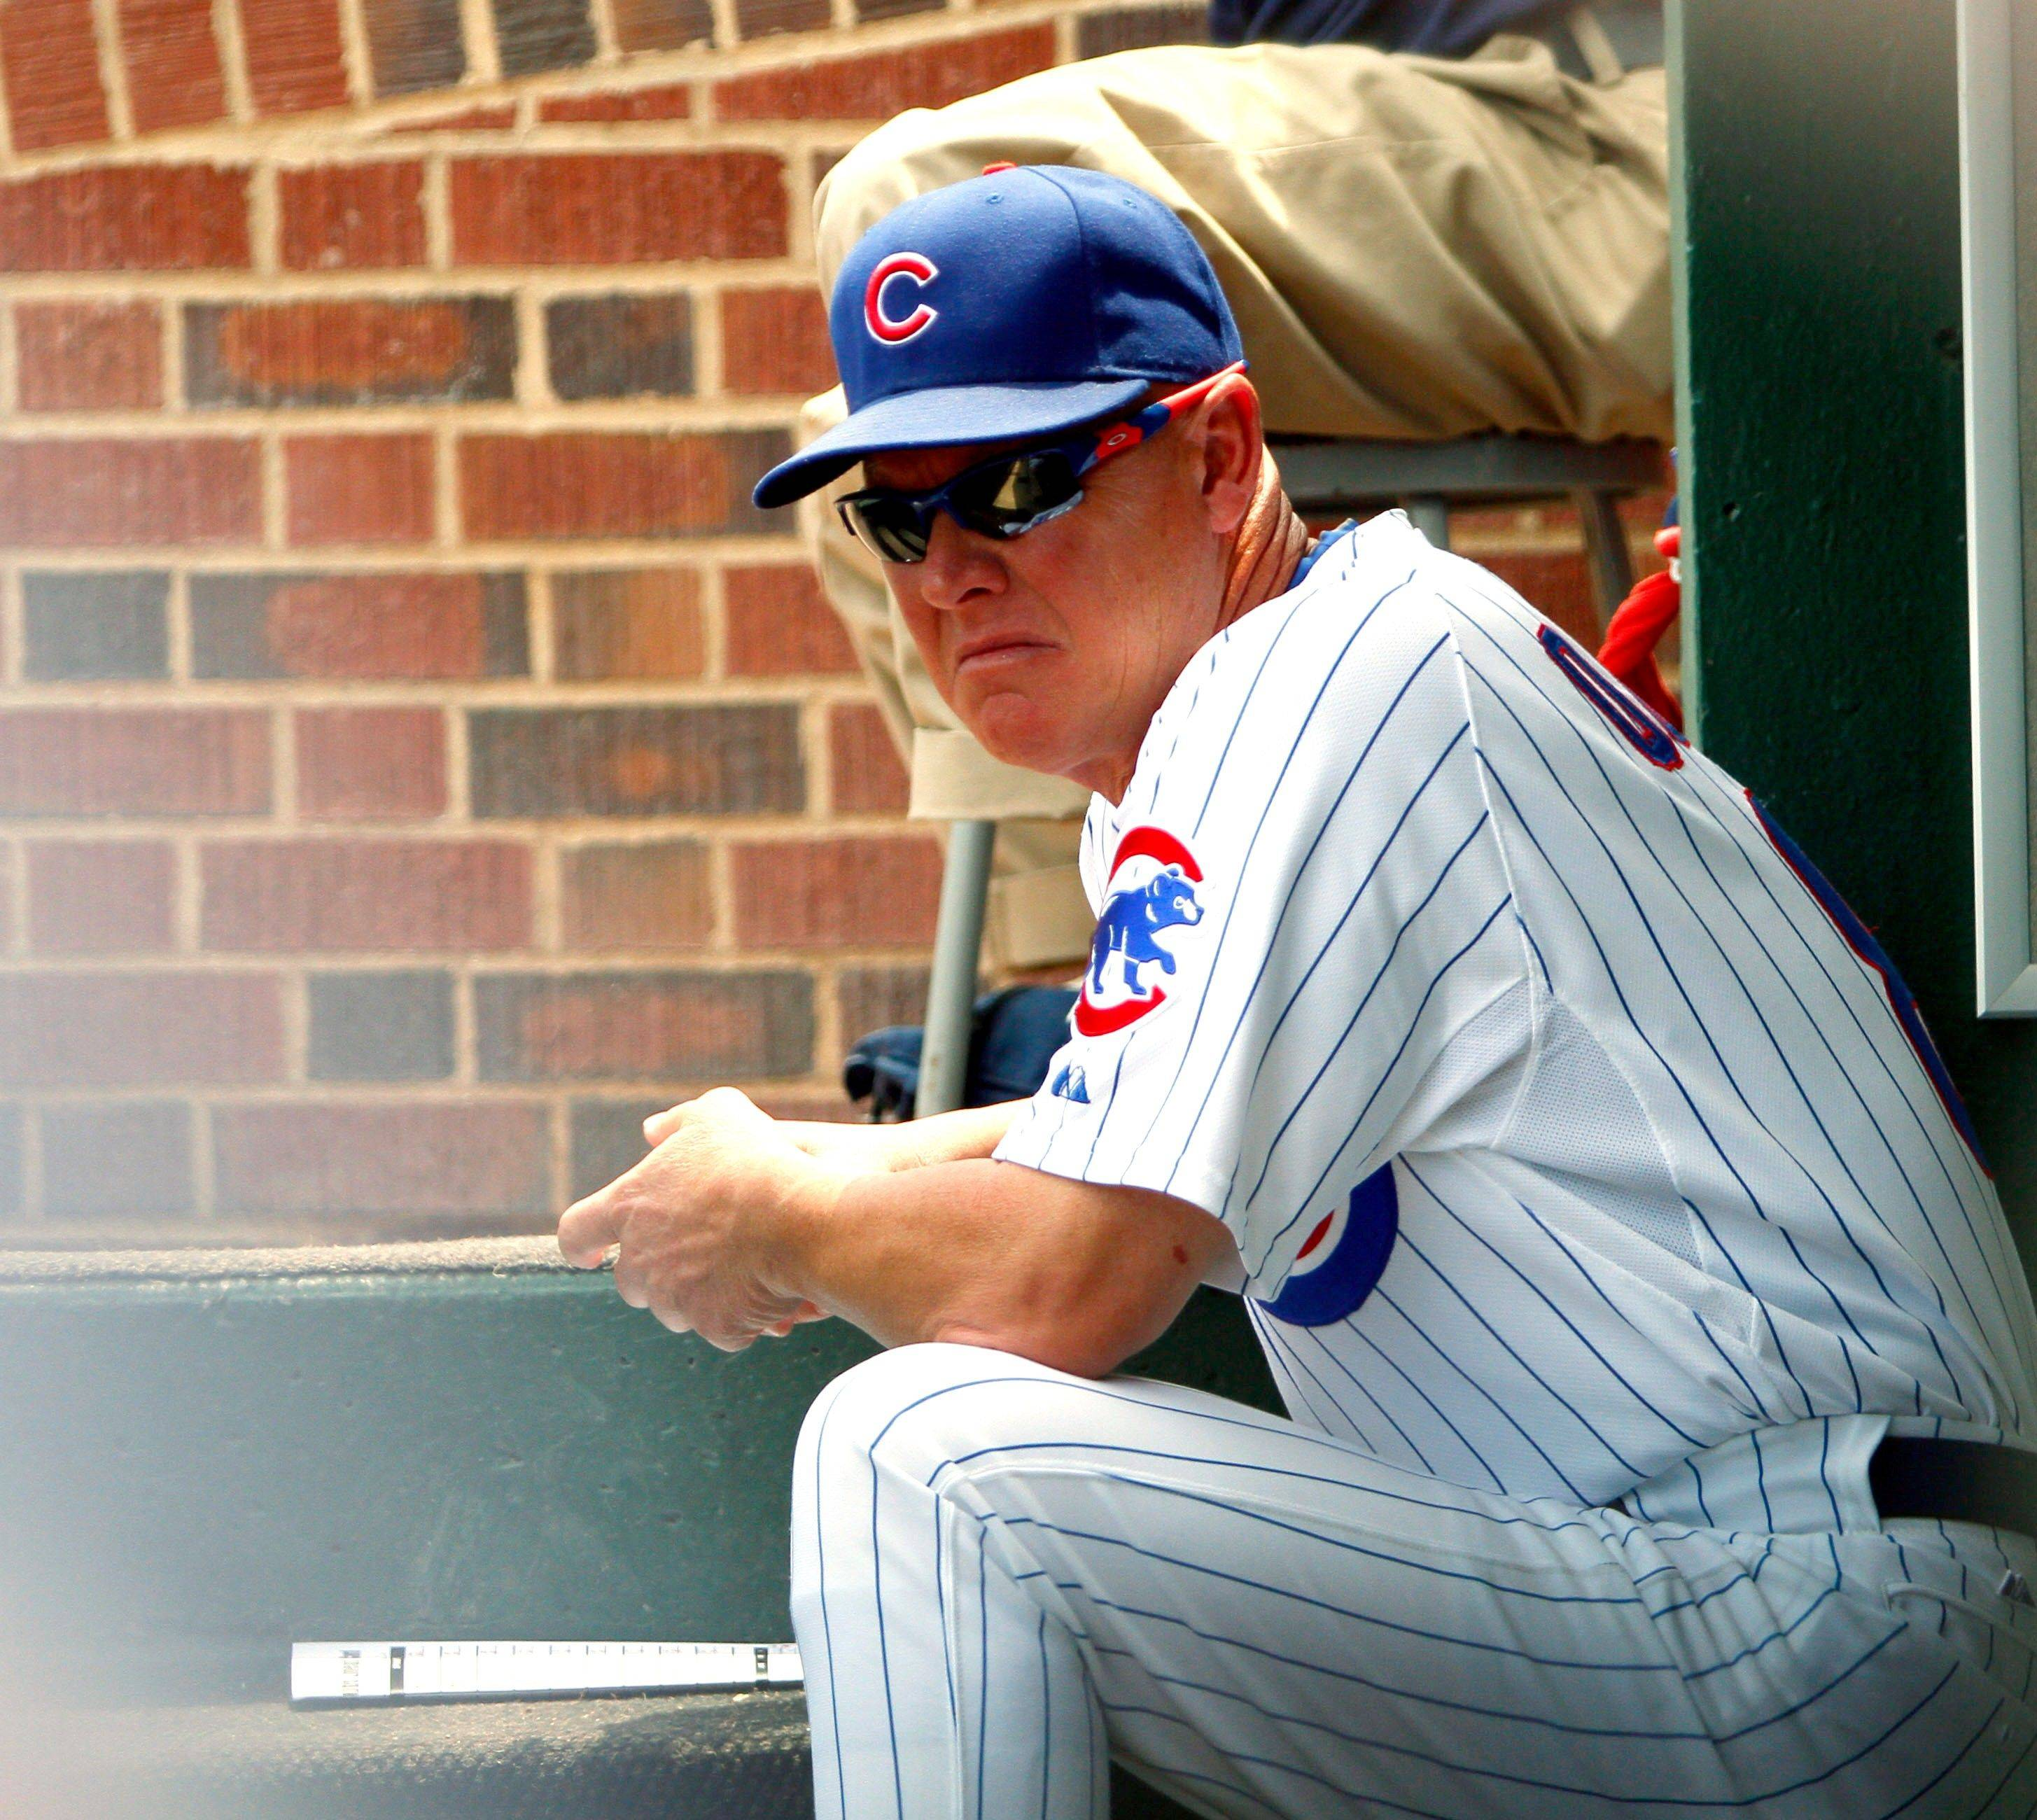 Cubs manager Mike Quade sits in the dugout after the final out, his team falling to a 38-58 with Sunday's loss to the Florida Marlins.